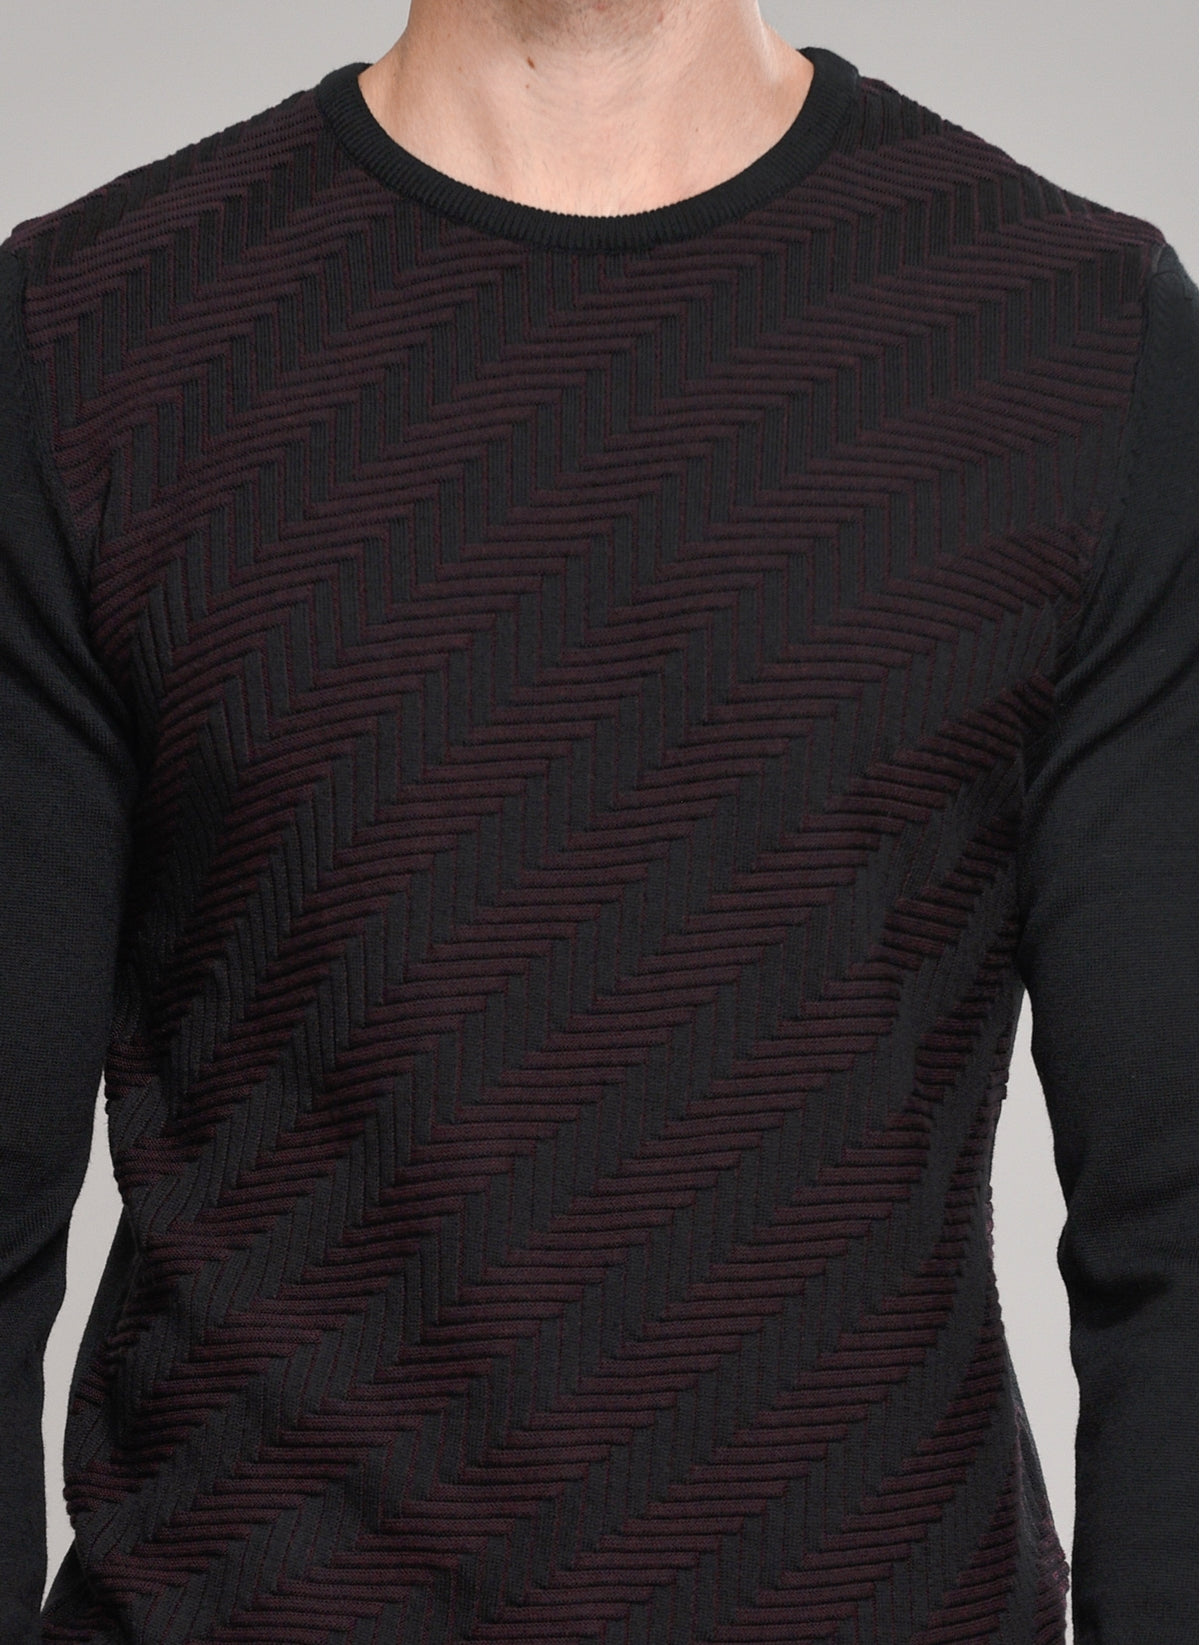 Patterned-Front Sweater in Dark Brown